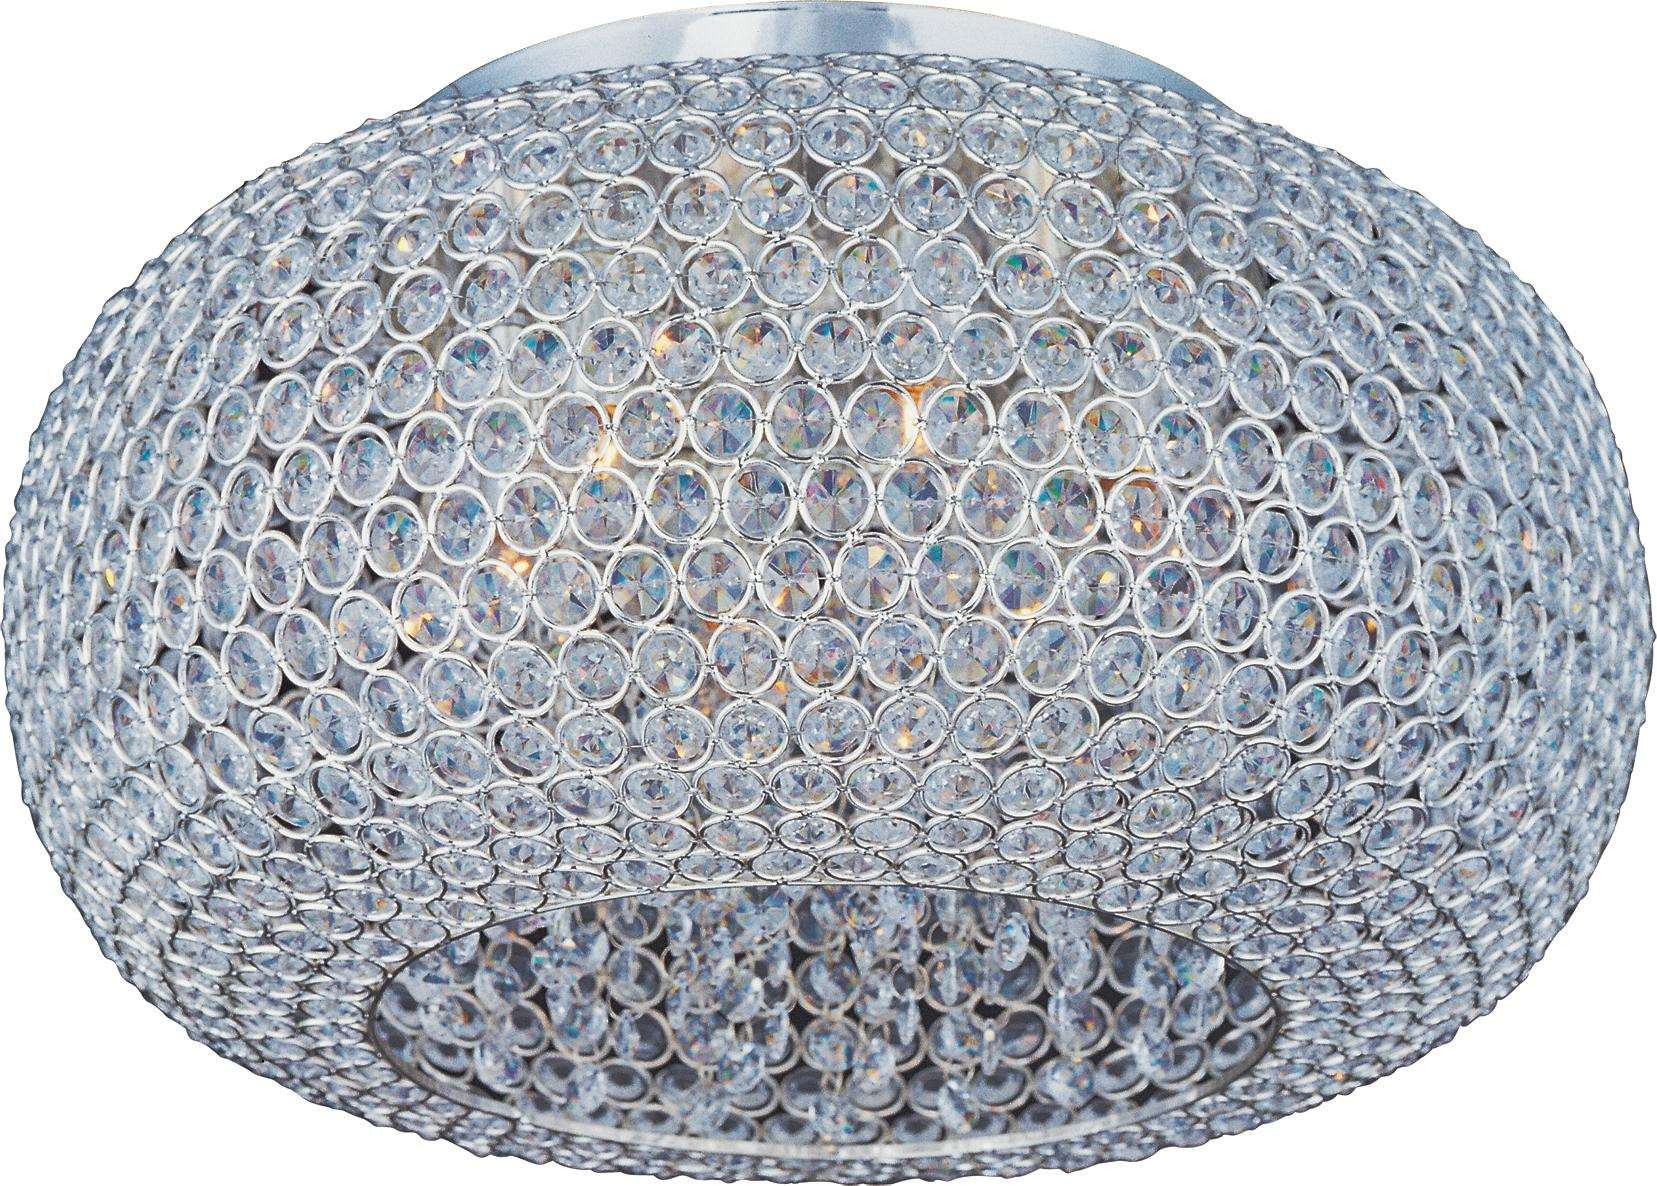 Maxim 39876BCPS Glimmer 6-Light Flush Mount in Plated Silver with Beveled Crystal glass.